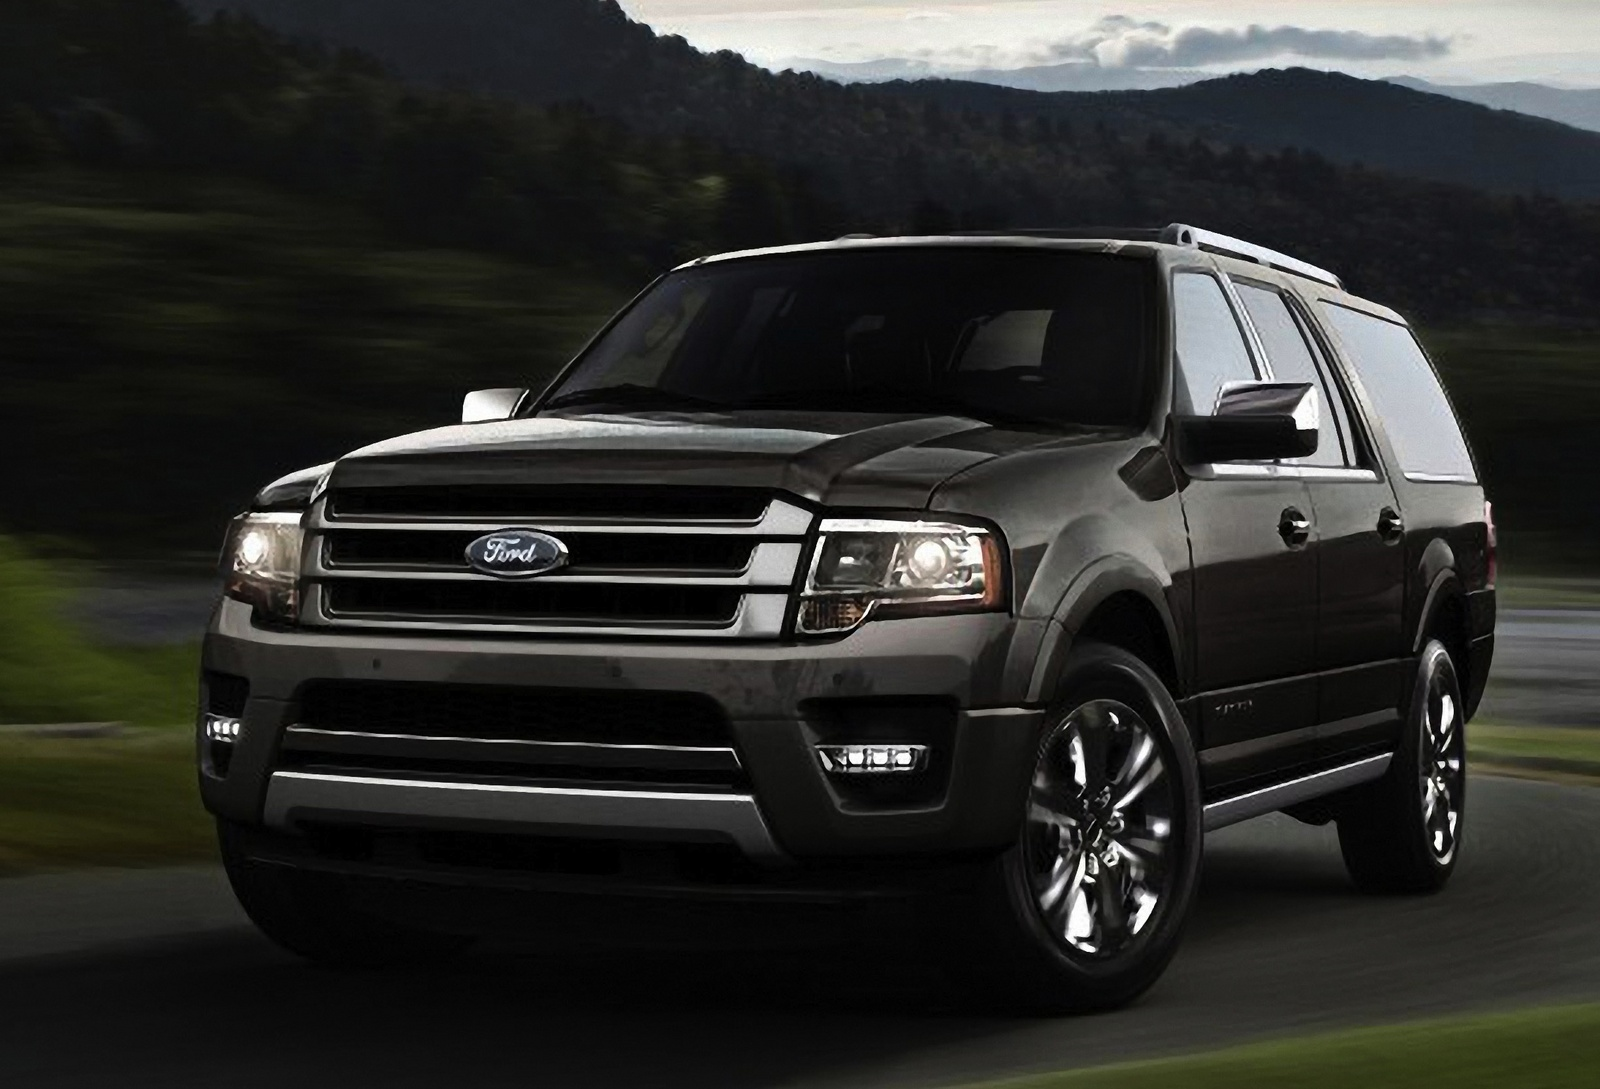 2015 ford expedition review cargurus. Black Bedroom Furniture Sets. Home Design Ideas